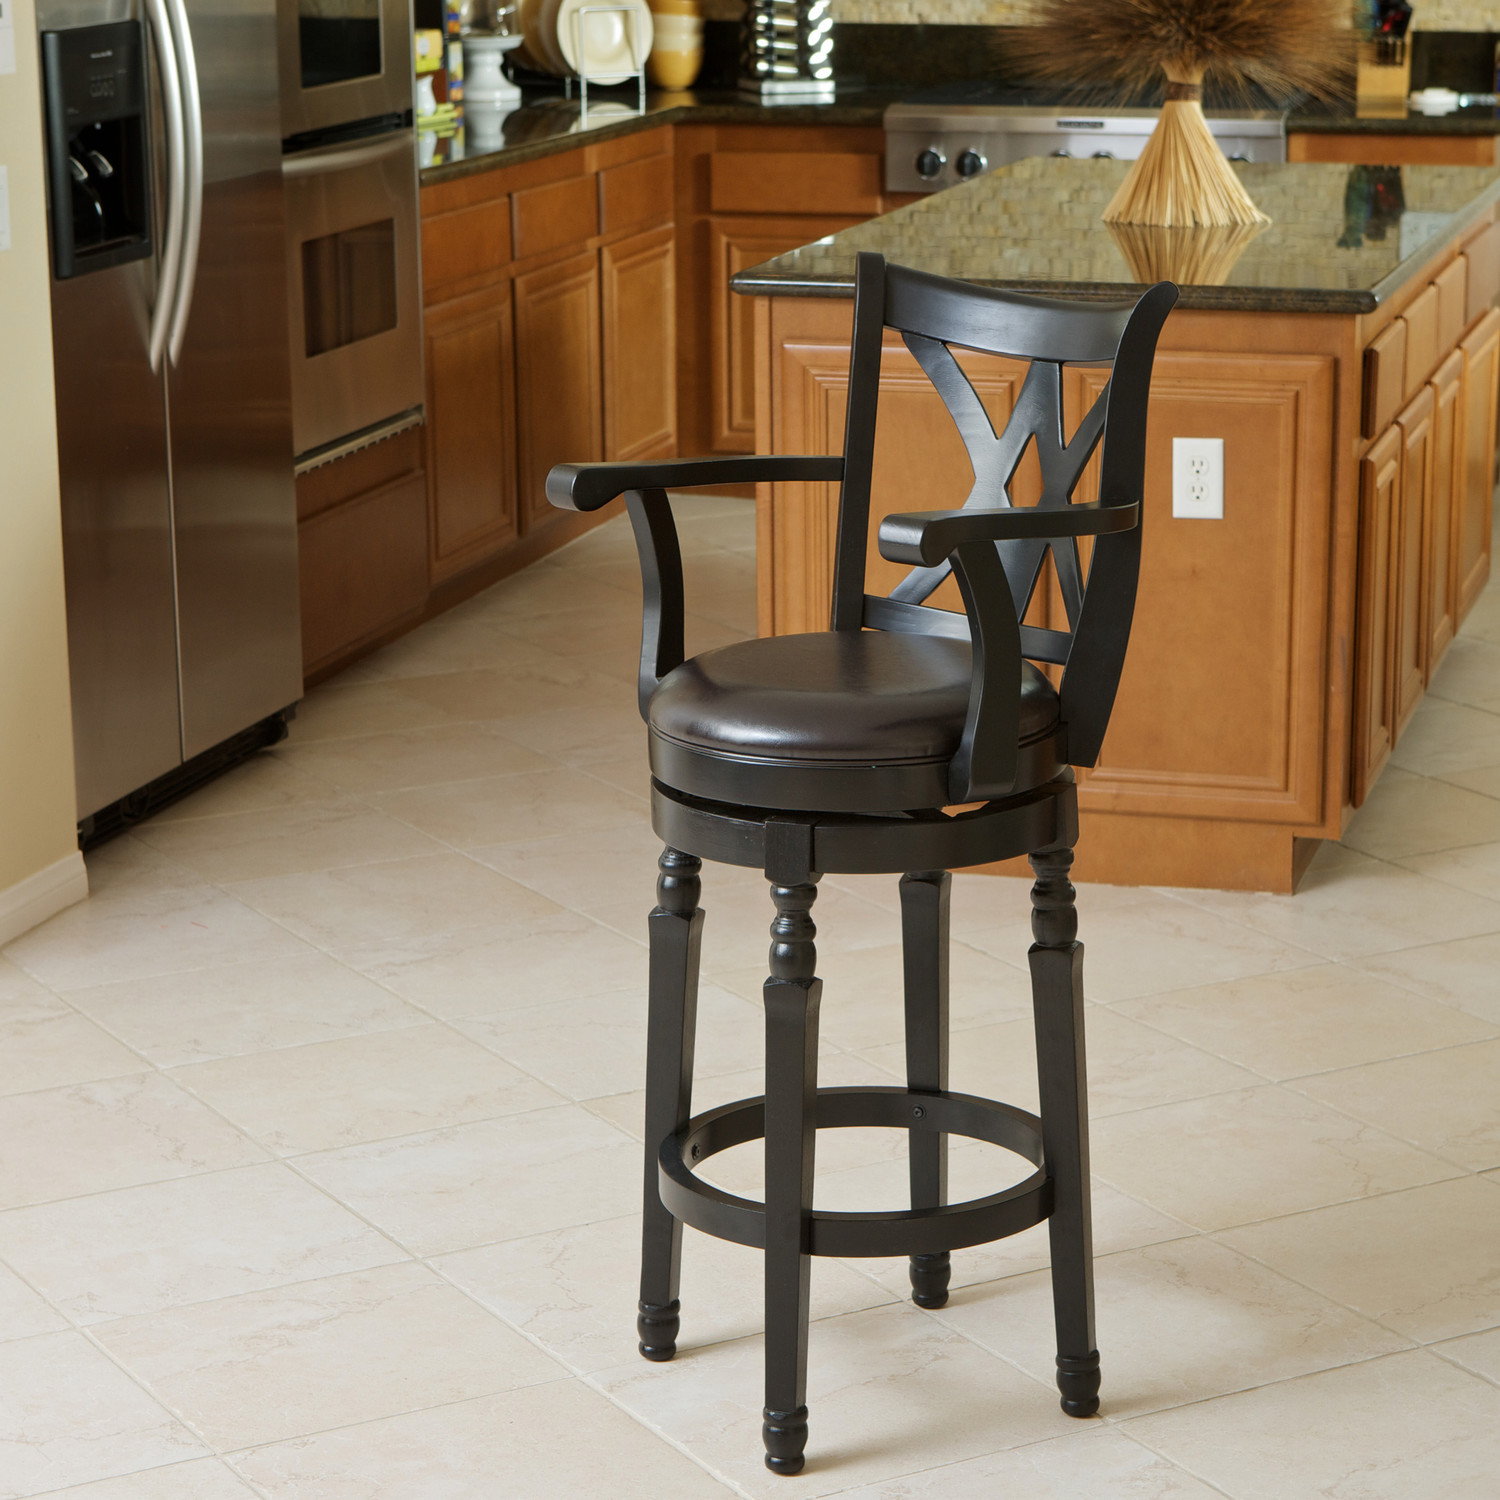 Stools For Kitchen Counters Kitchen Counter Stools With Backs